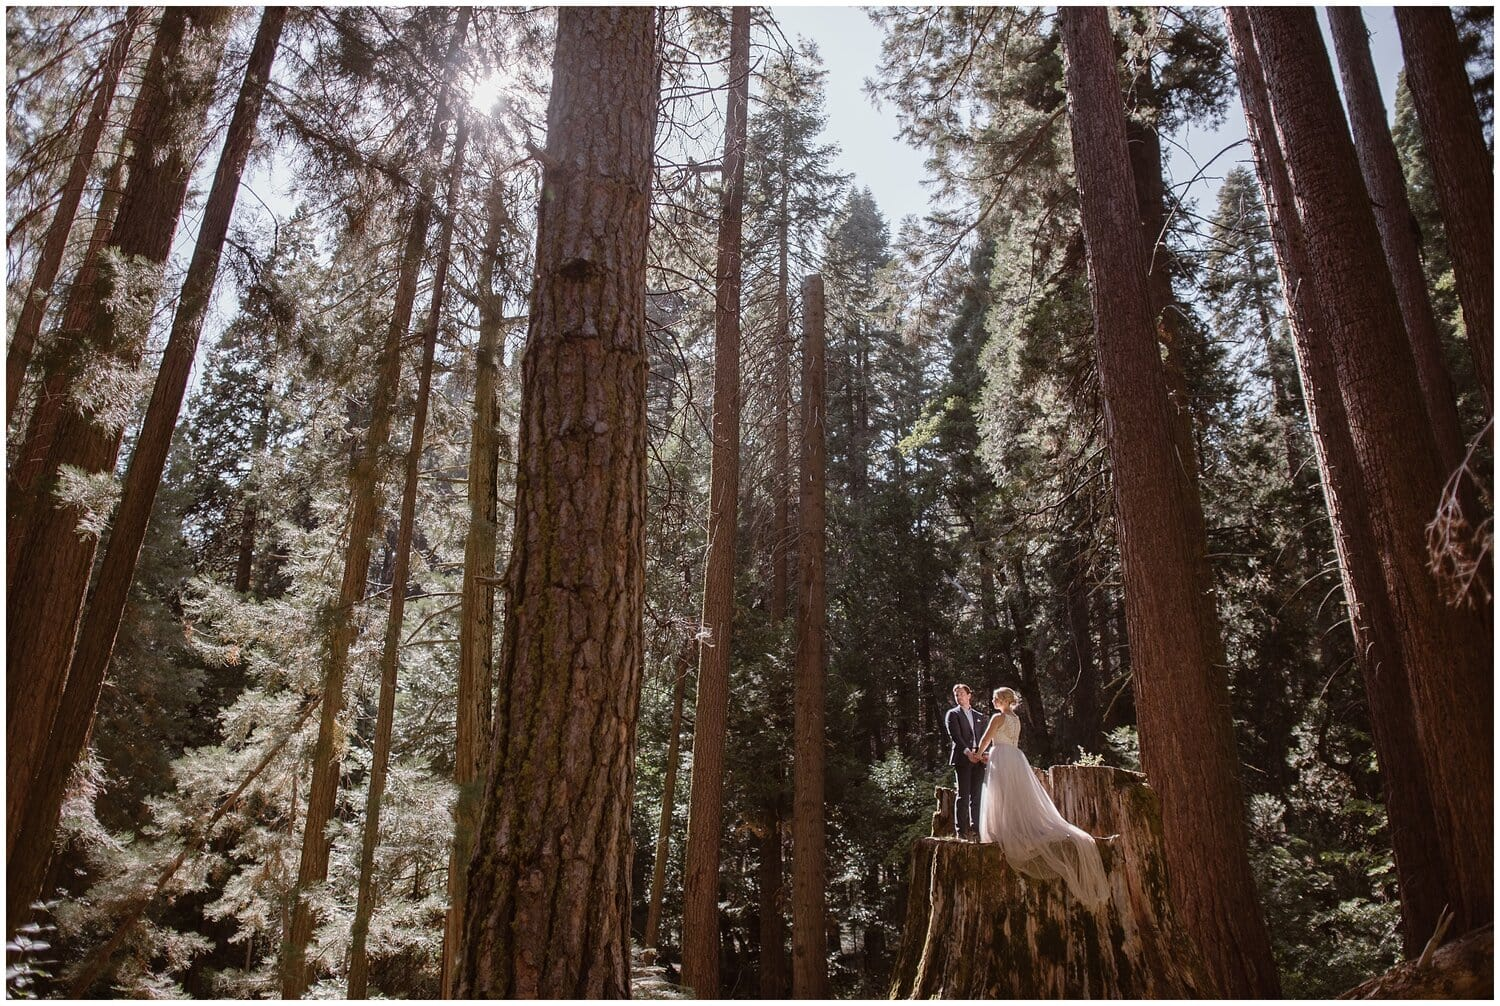 Bride and groom stand on a tree stump in a forest on their wedding day.